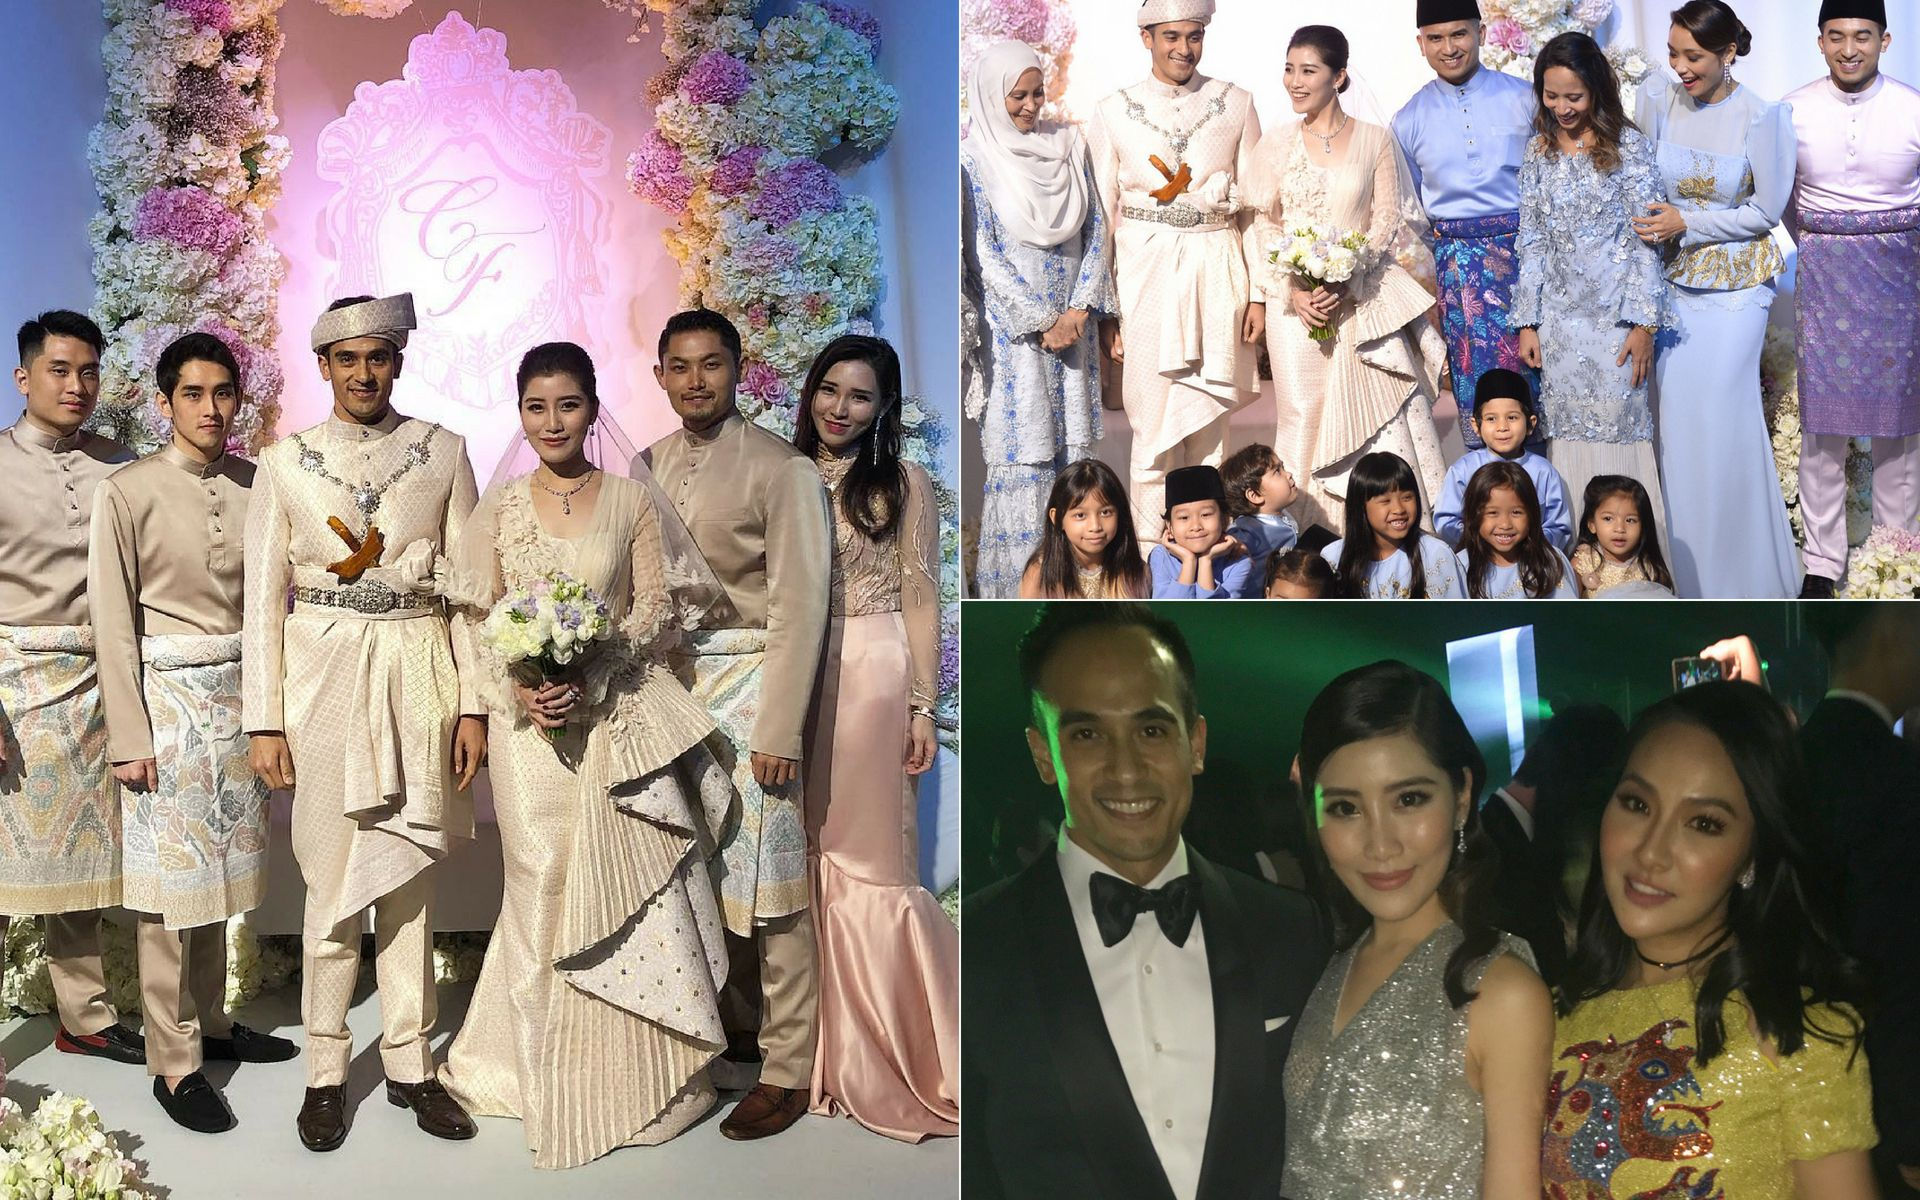 Tatlergrams Of The Week: Highlights Of #Chrysfaliqeverafter Part 2: A Fantasy Wedding Reception